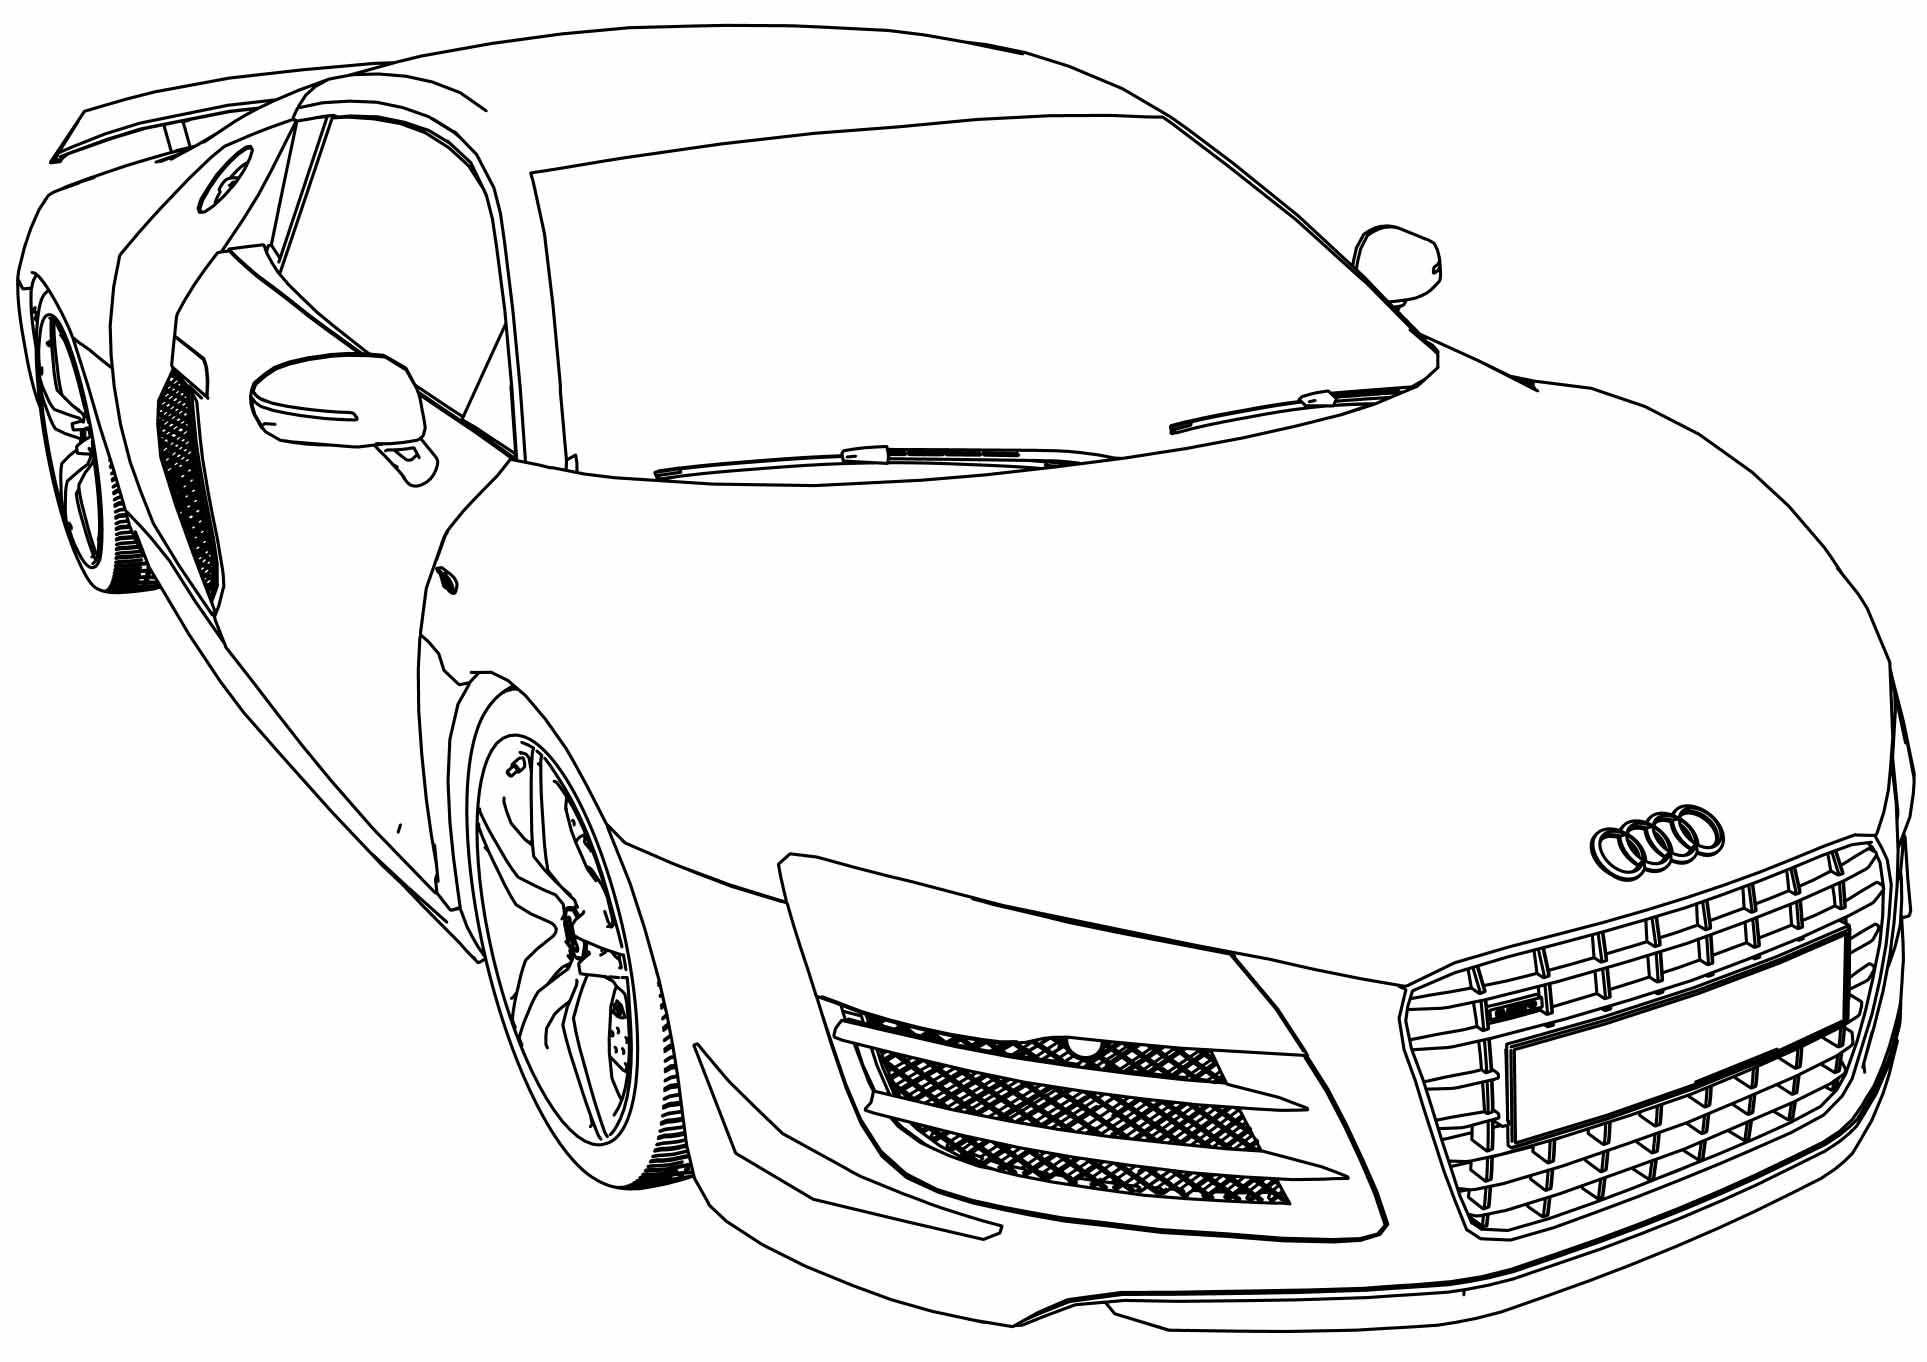 Audi R8 Coloring Pages At Getcolorings